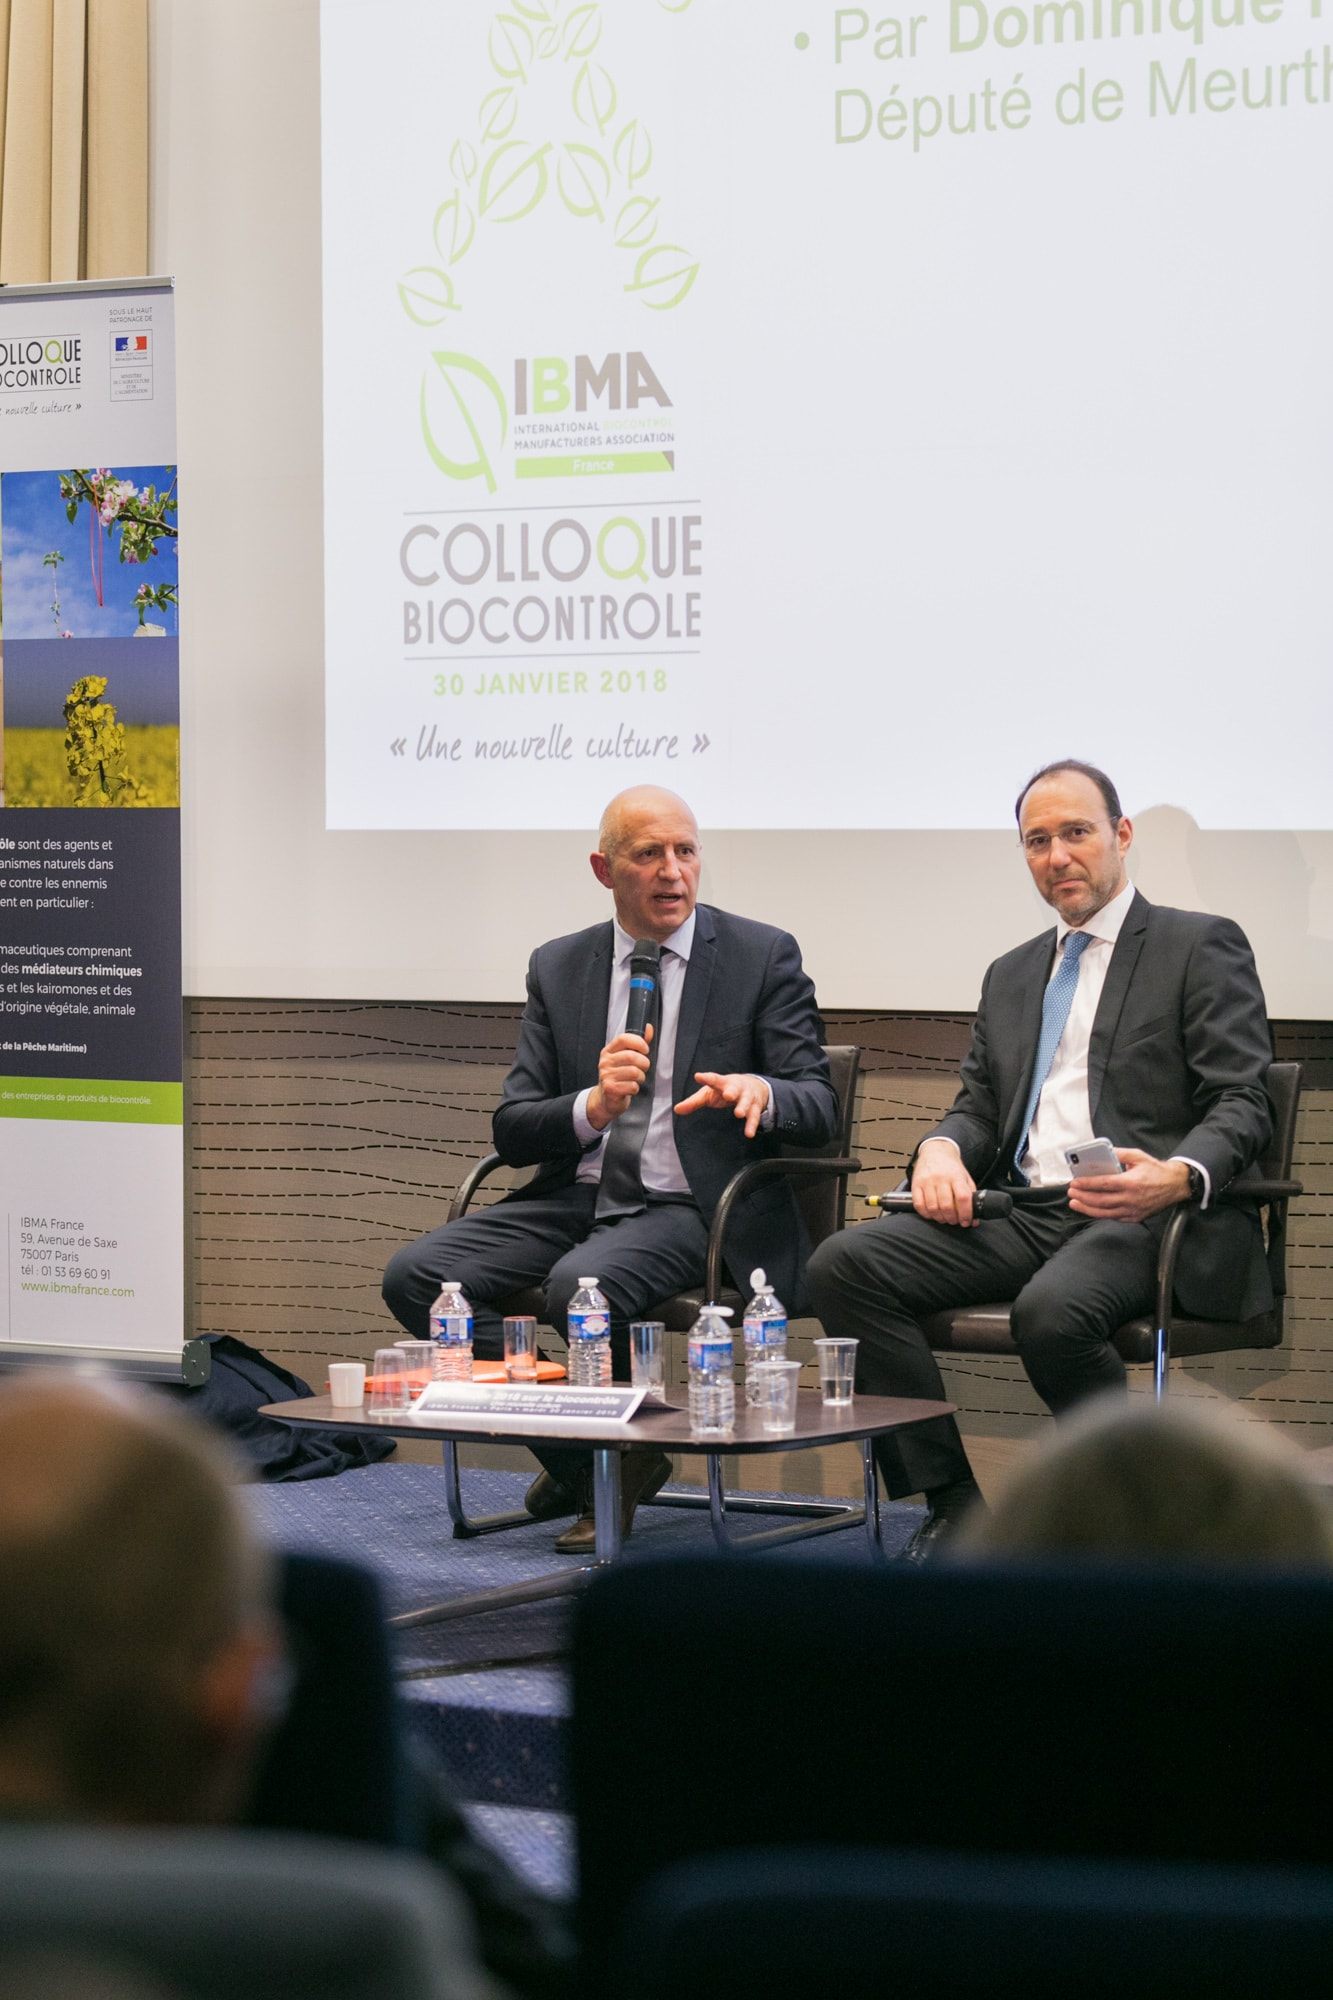 ibma-colloque-2018_103-min